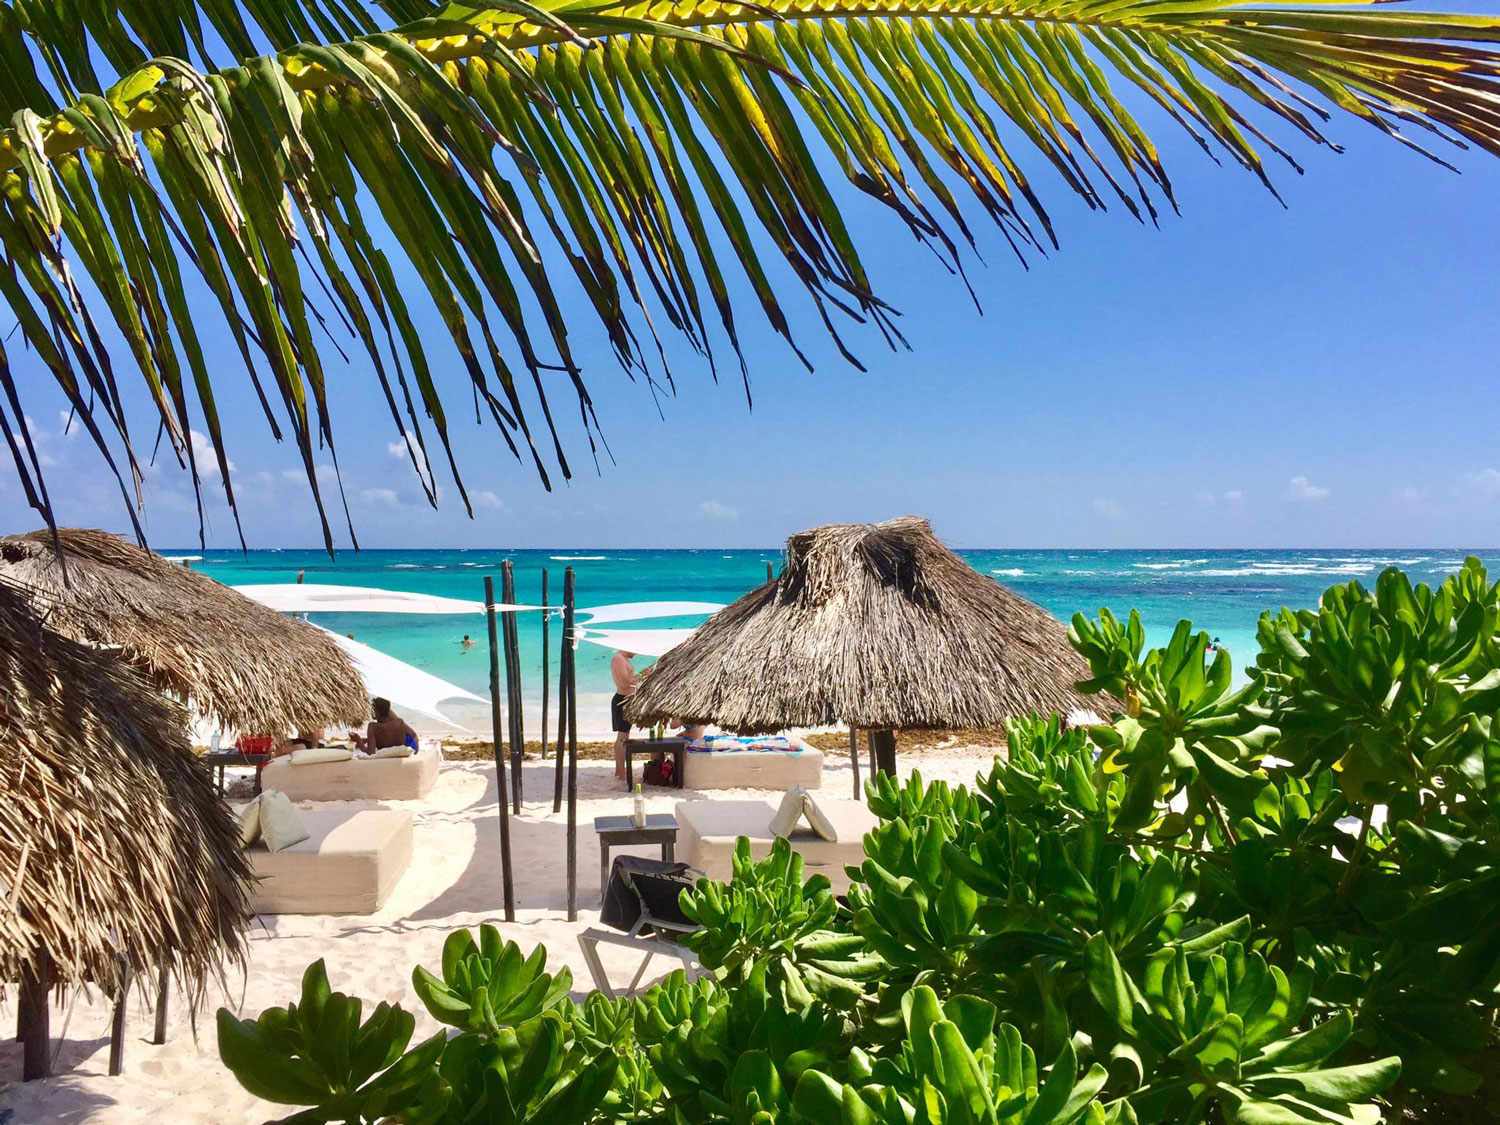 Hammocks_and_Ruins_Riviera_Maya_What_to_Do_Playa_Del_Carmen_Tulum_Beaches_Xpu_Ha_3.jpg